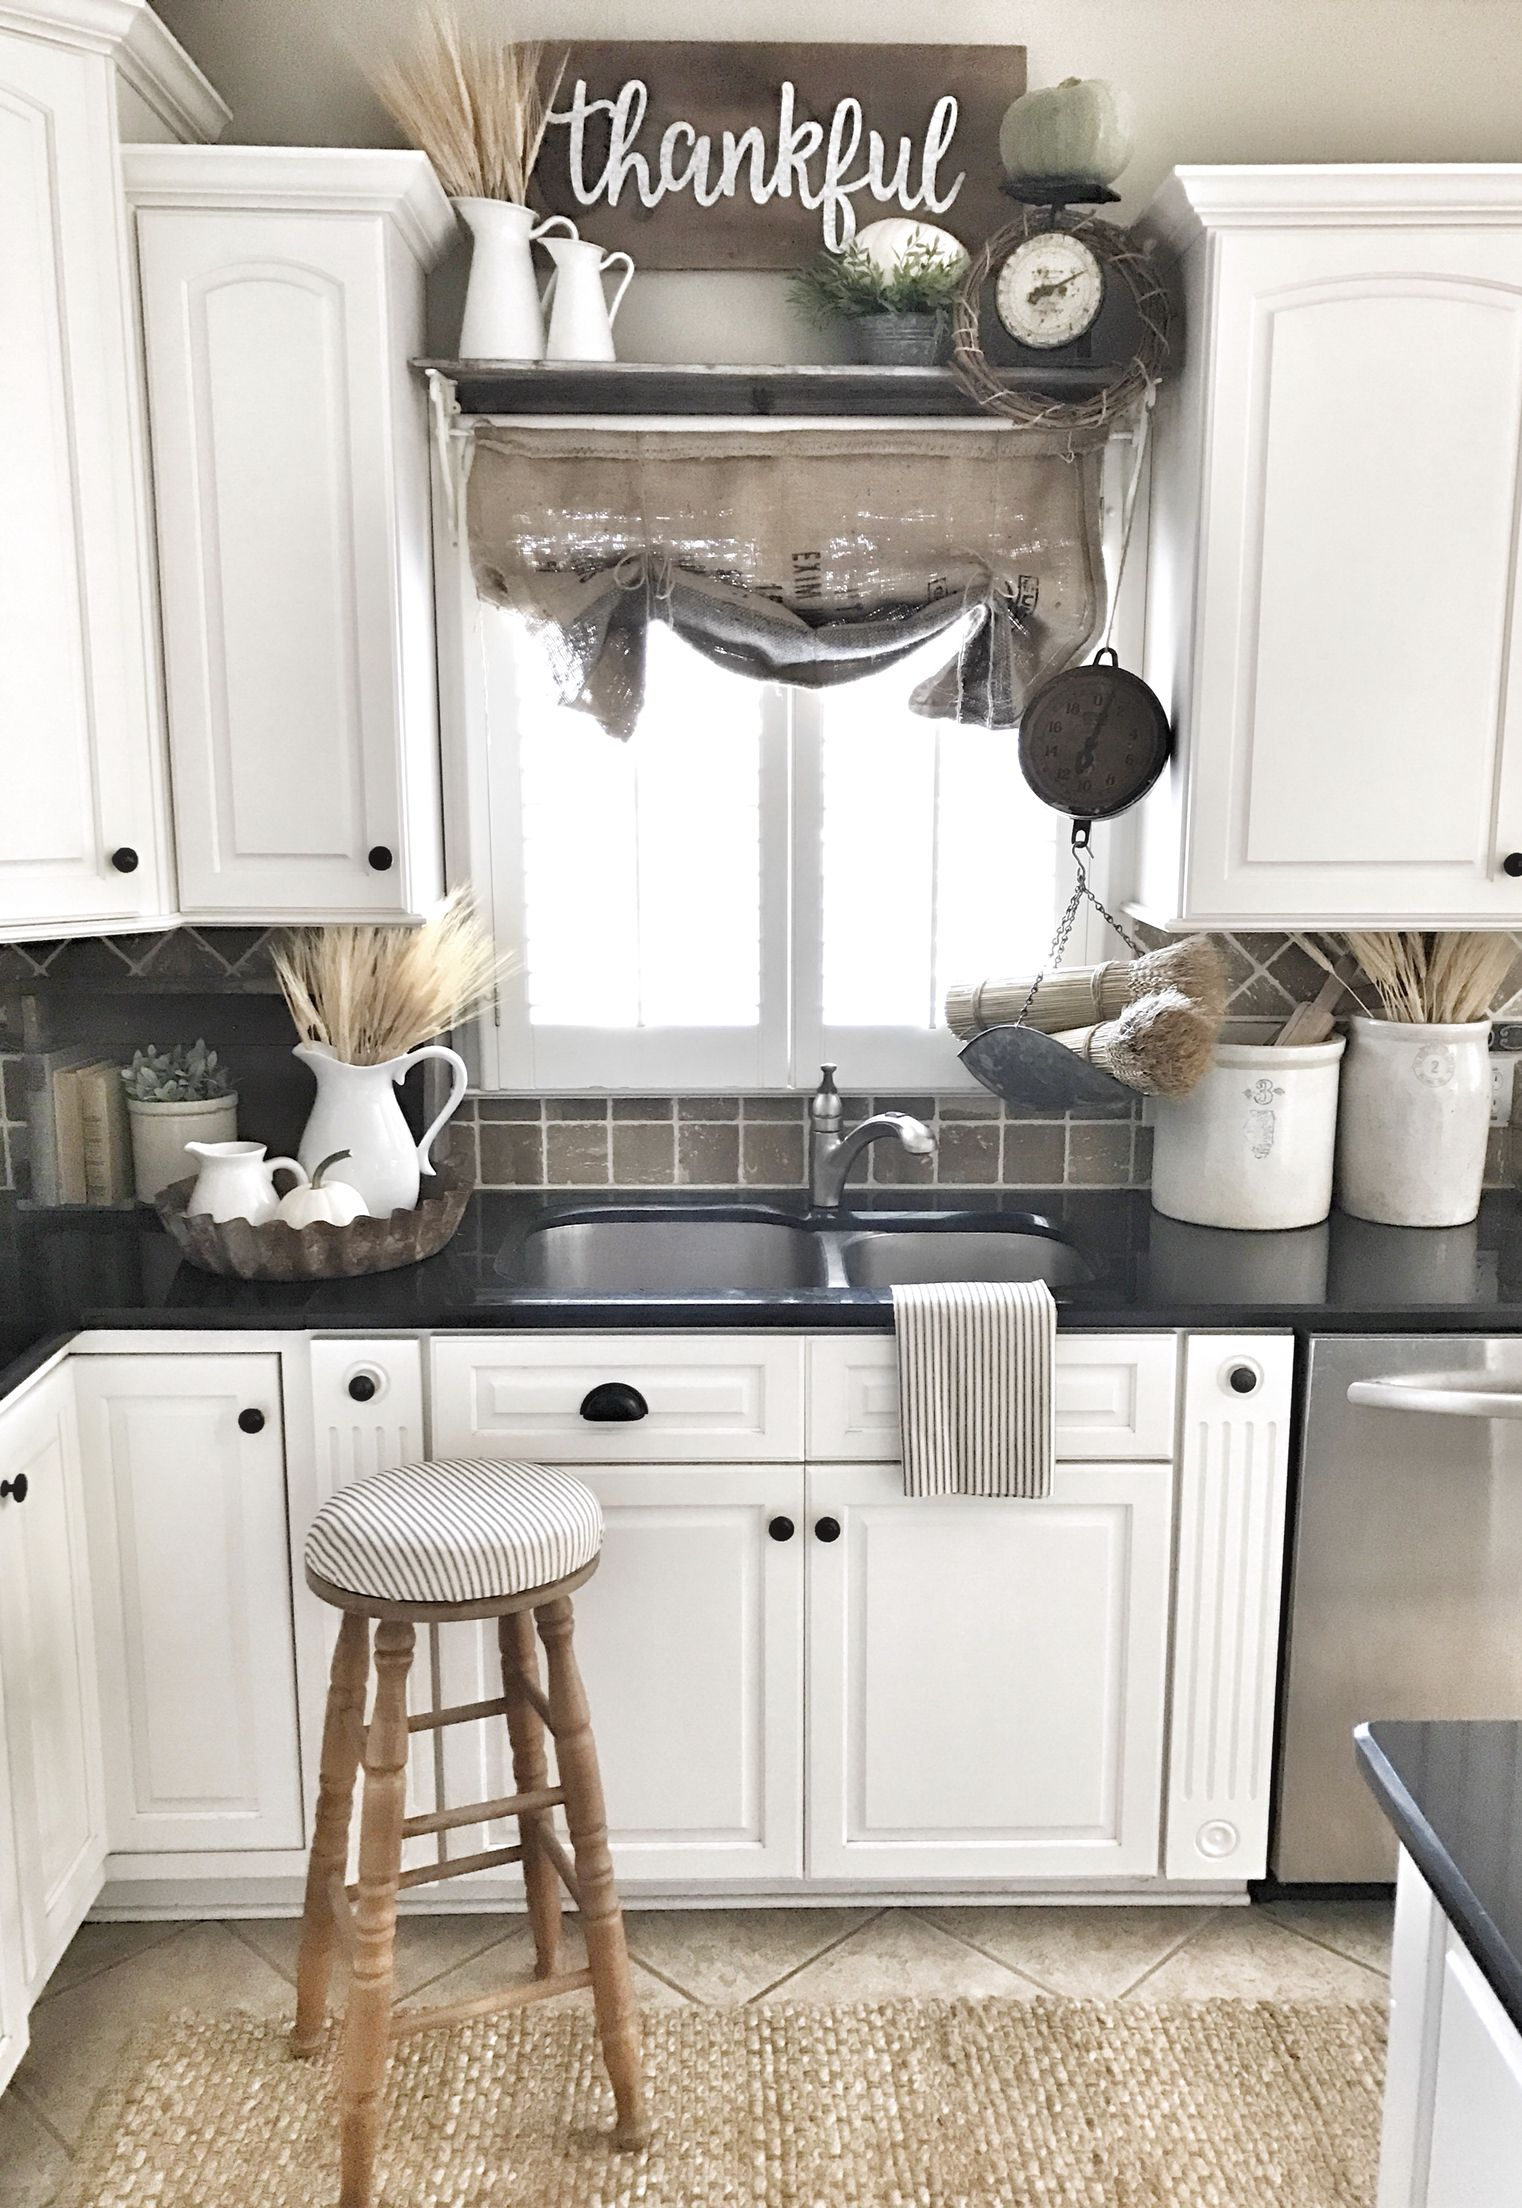 Explore Farmhouse Kitchen Decor, Farmhouse Style, And More! Part 96